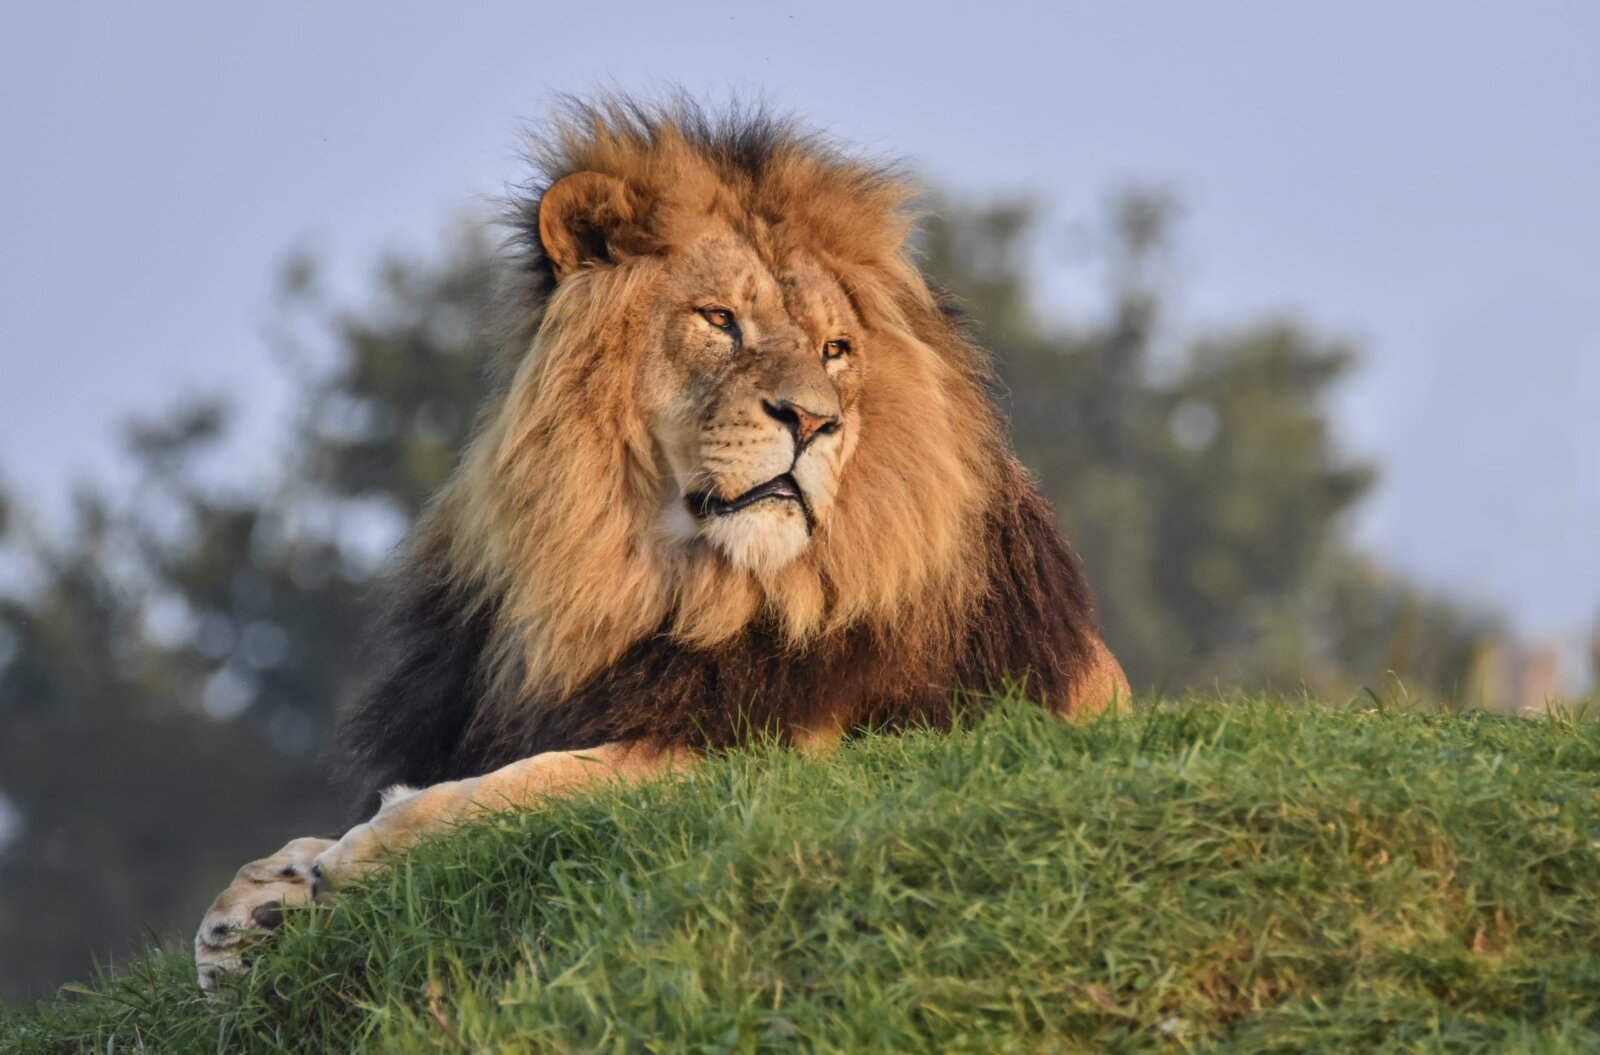 You can camp next to the lions at Yorkshire Wildlife Park from just £50 a night, The Manc